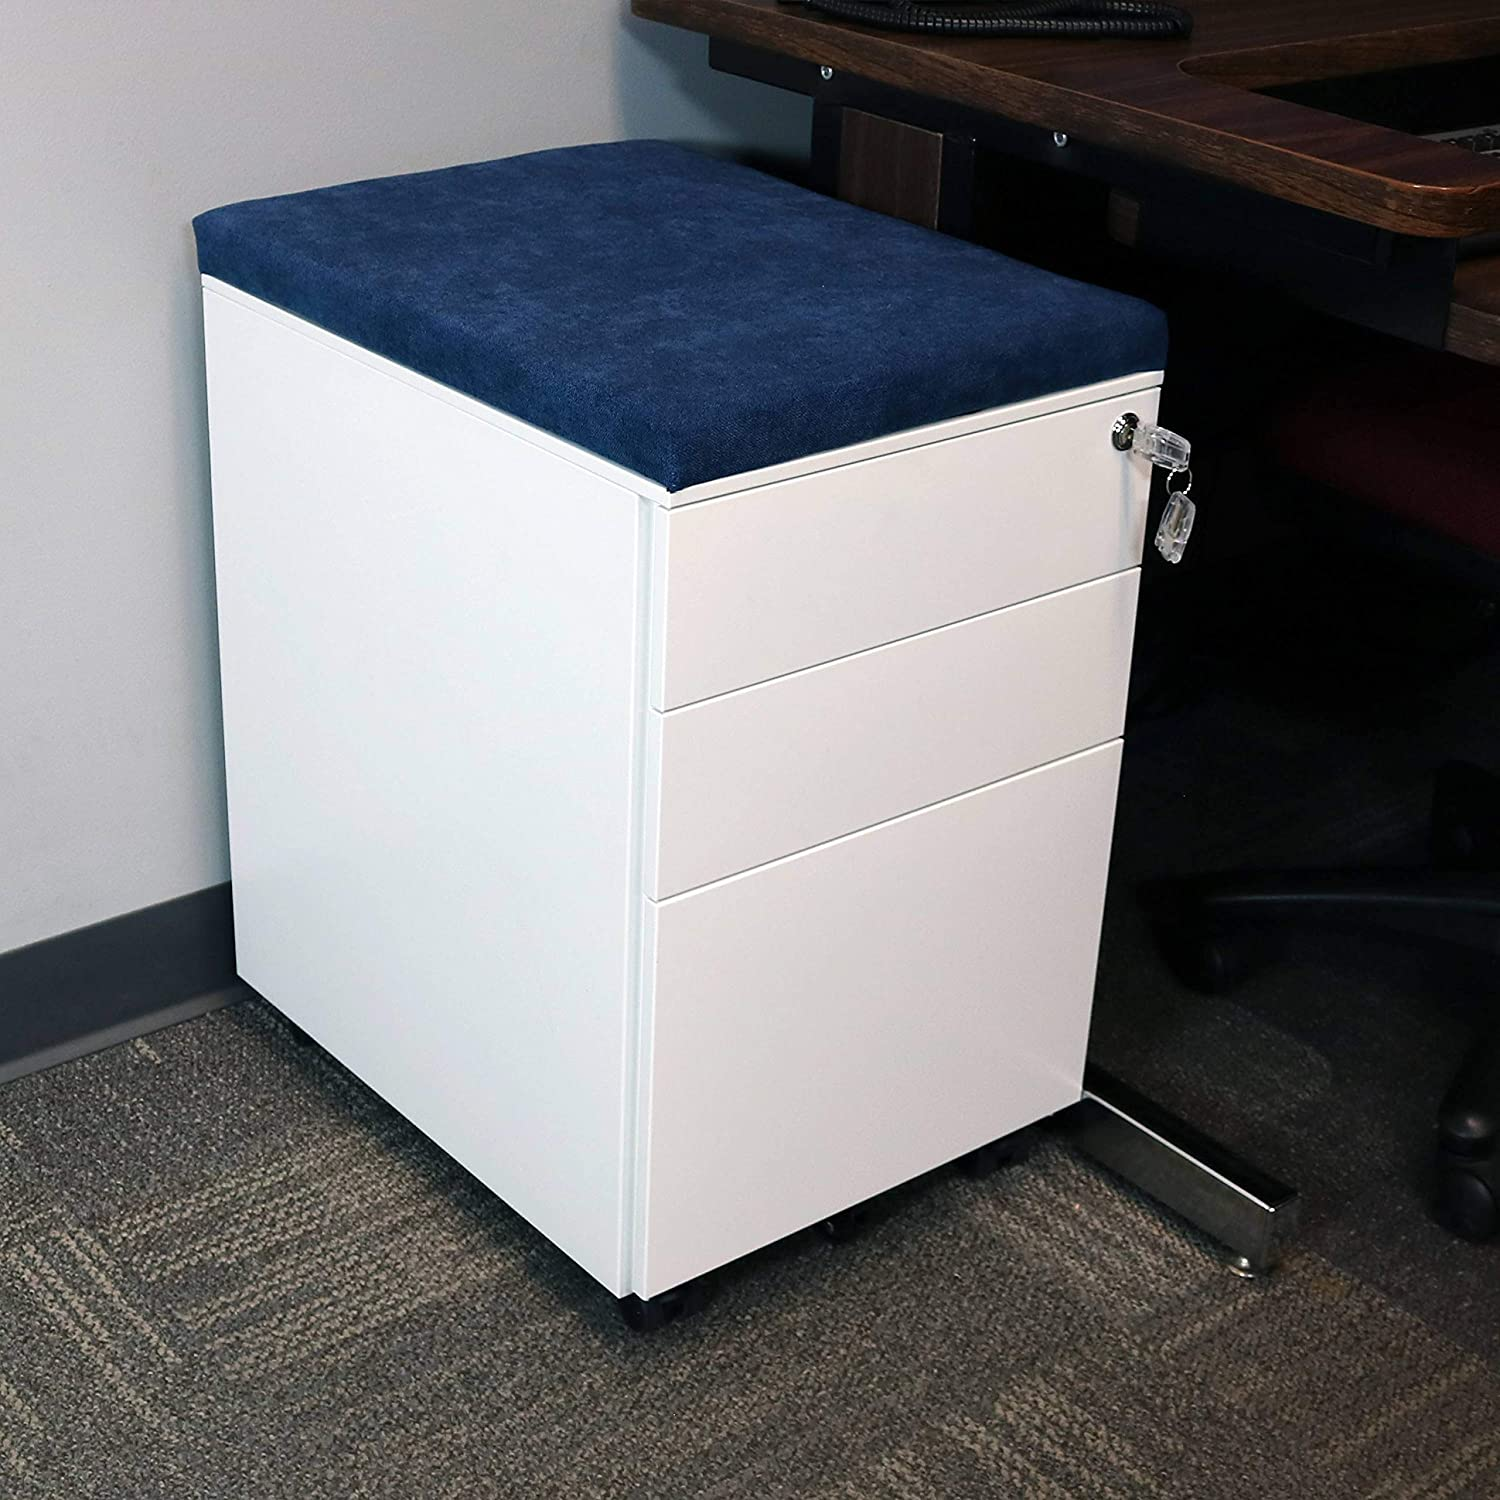 CASL Brands Rolling Mobile File Cabinet with Lock /& Cushion Seat Black with Gray Cushion Small Steel 3-Drawer Filing Storage System